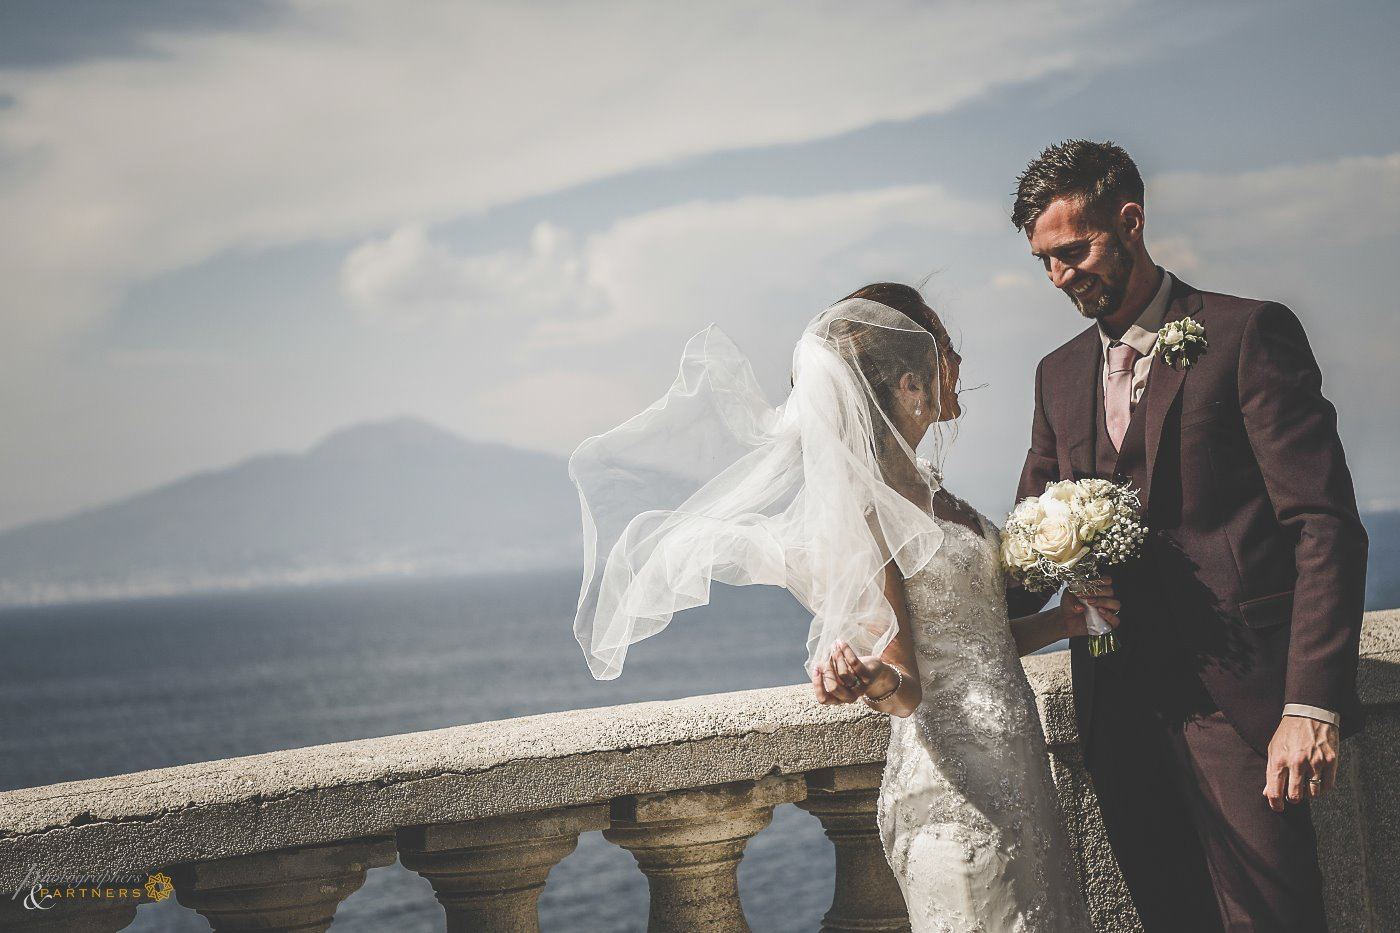 photography_weddings_sorrento_15.jpg